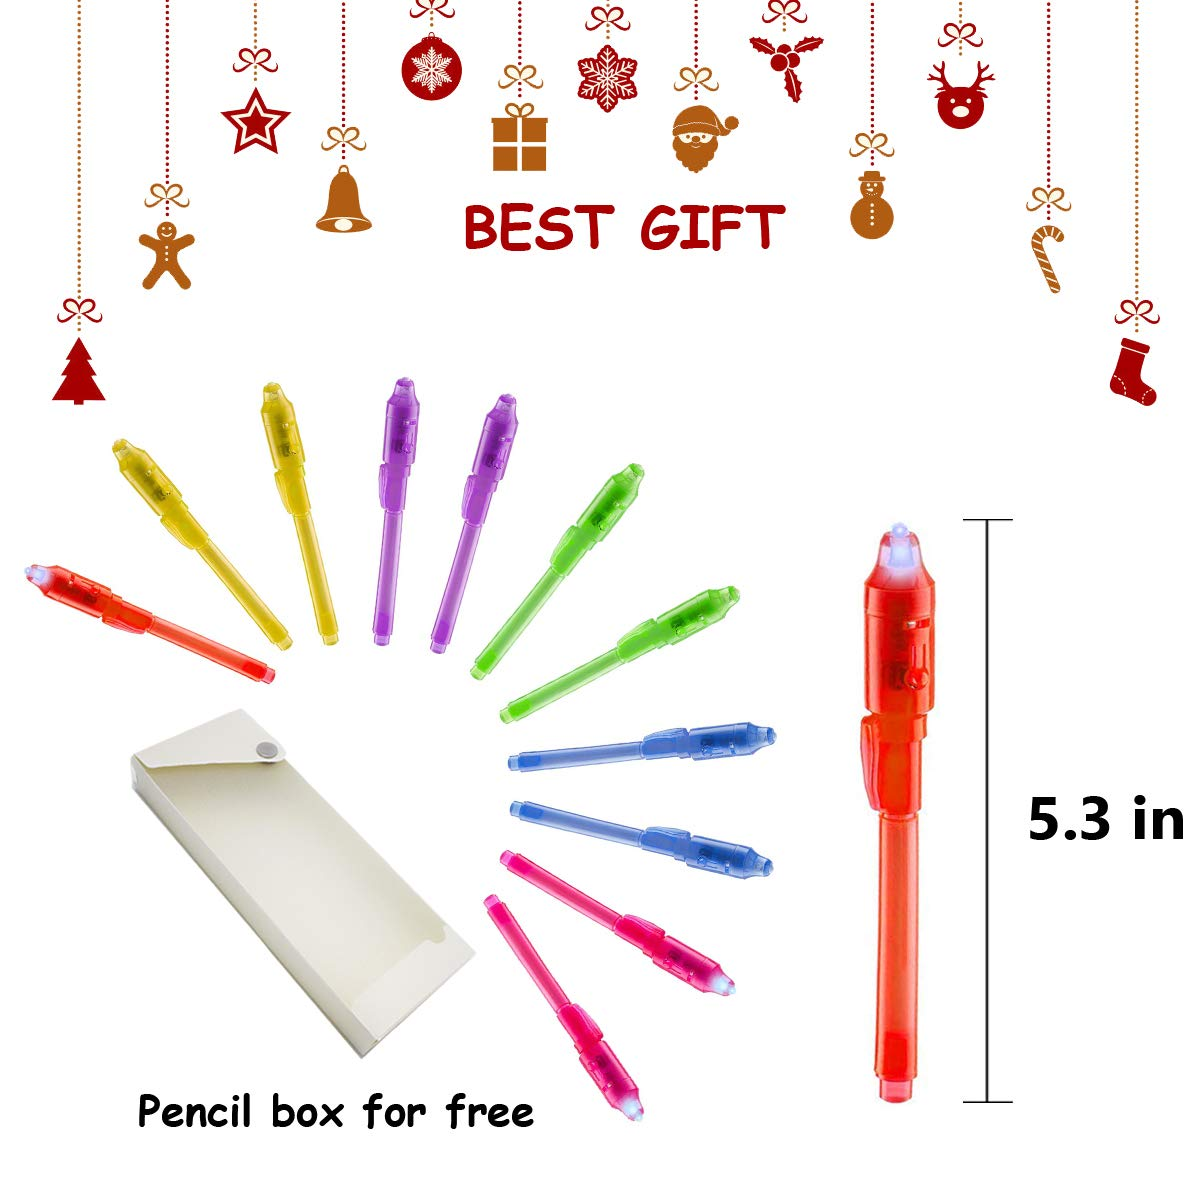 Joyjam Toys for 3-8 Year Old Boys Girls Invisible Ink Pen Spy Gear for Kids Magic Pen with UV Light Party Favors for Kids Christmas Novelty Gifts Stocking Stuffers (12 Pack) by Joyjam (Image #6)